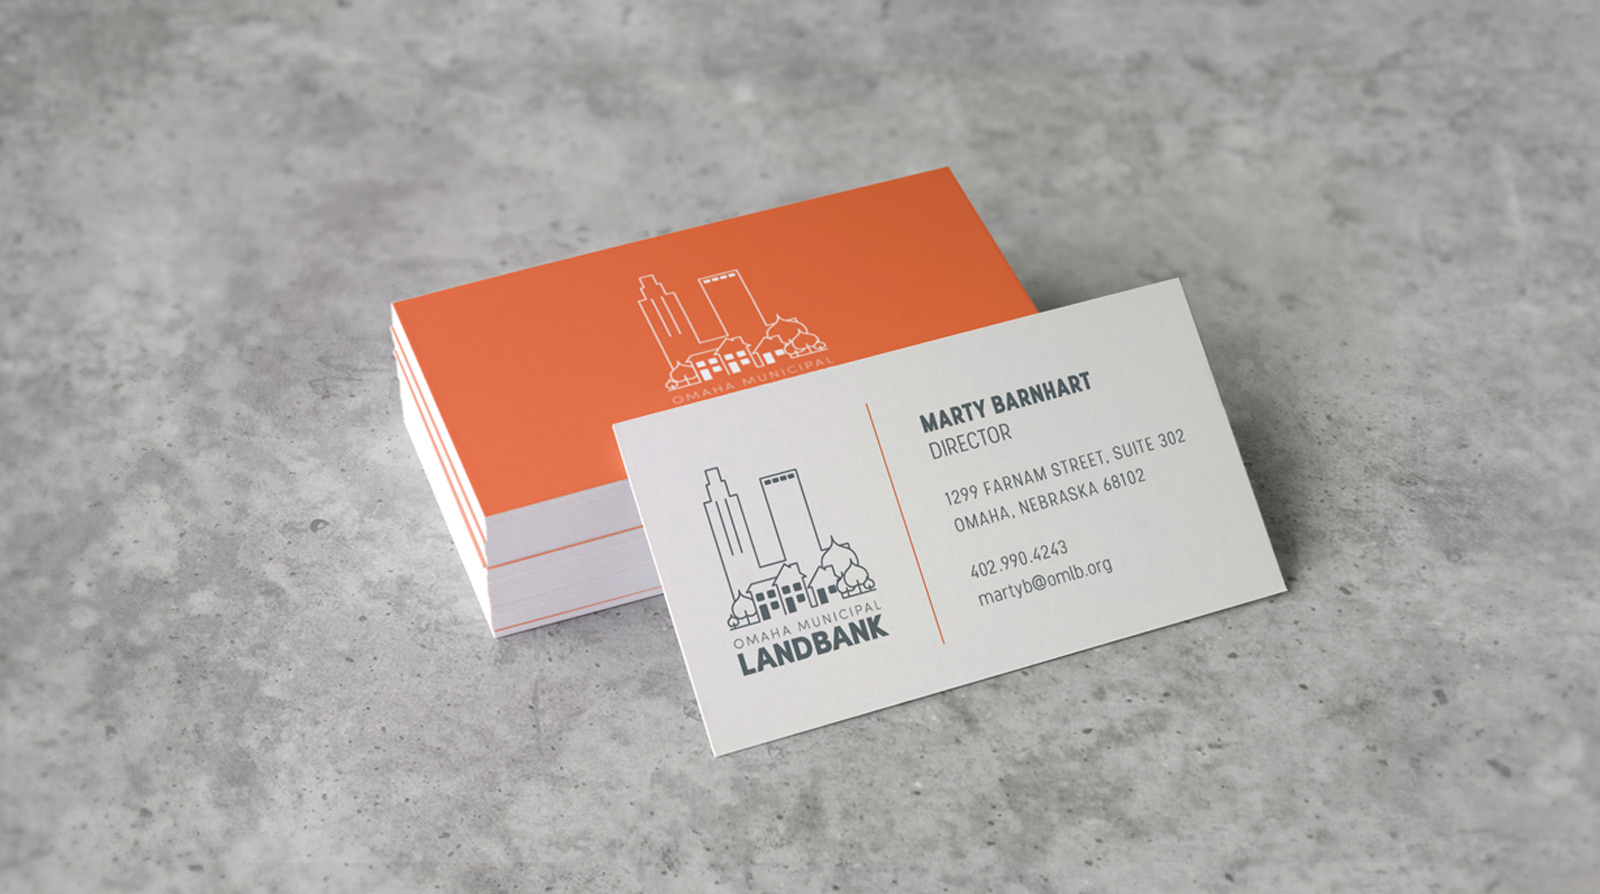 Omaha land bank businesscard omaha land bank business cards colourmoves